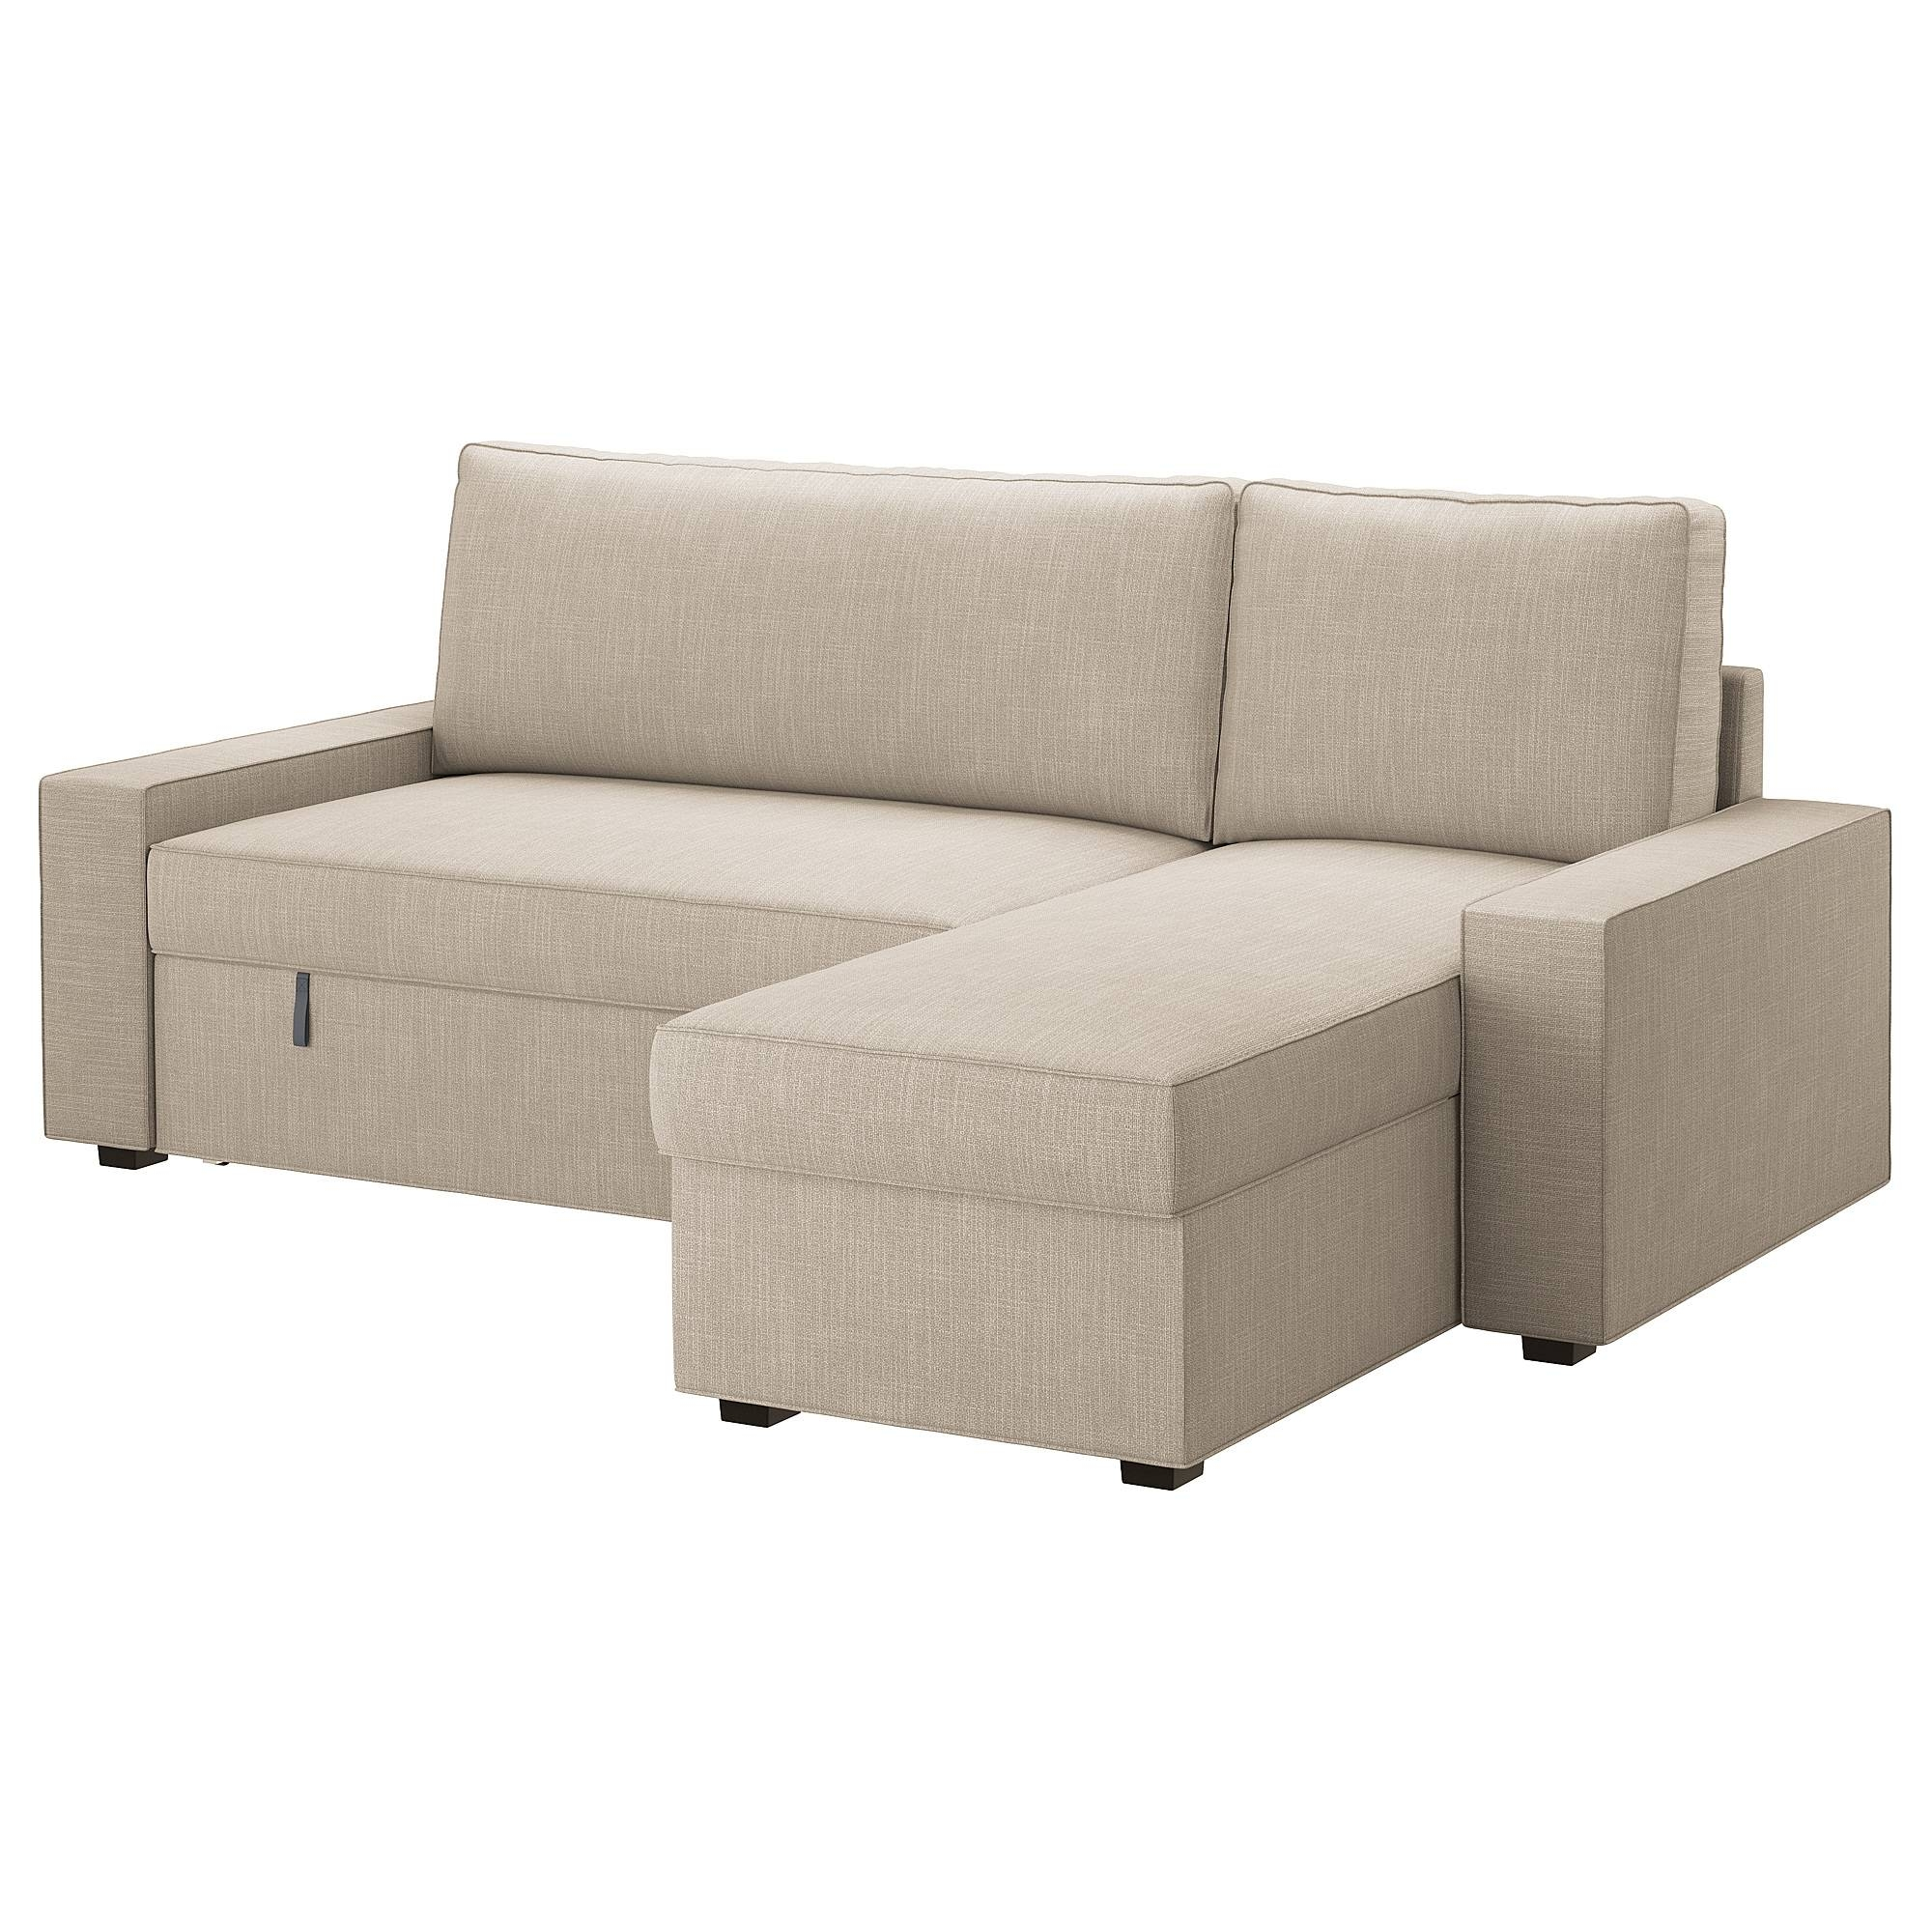 Vilasund Sofa Bed With Chaise Longue Hillared Beige - Ikea in Chaise Longue Sofa Beds (Image 15 of 15)